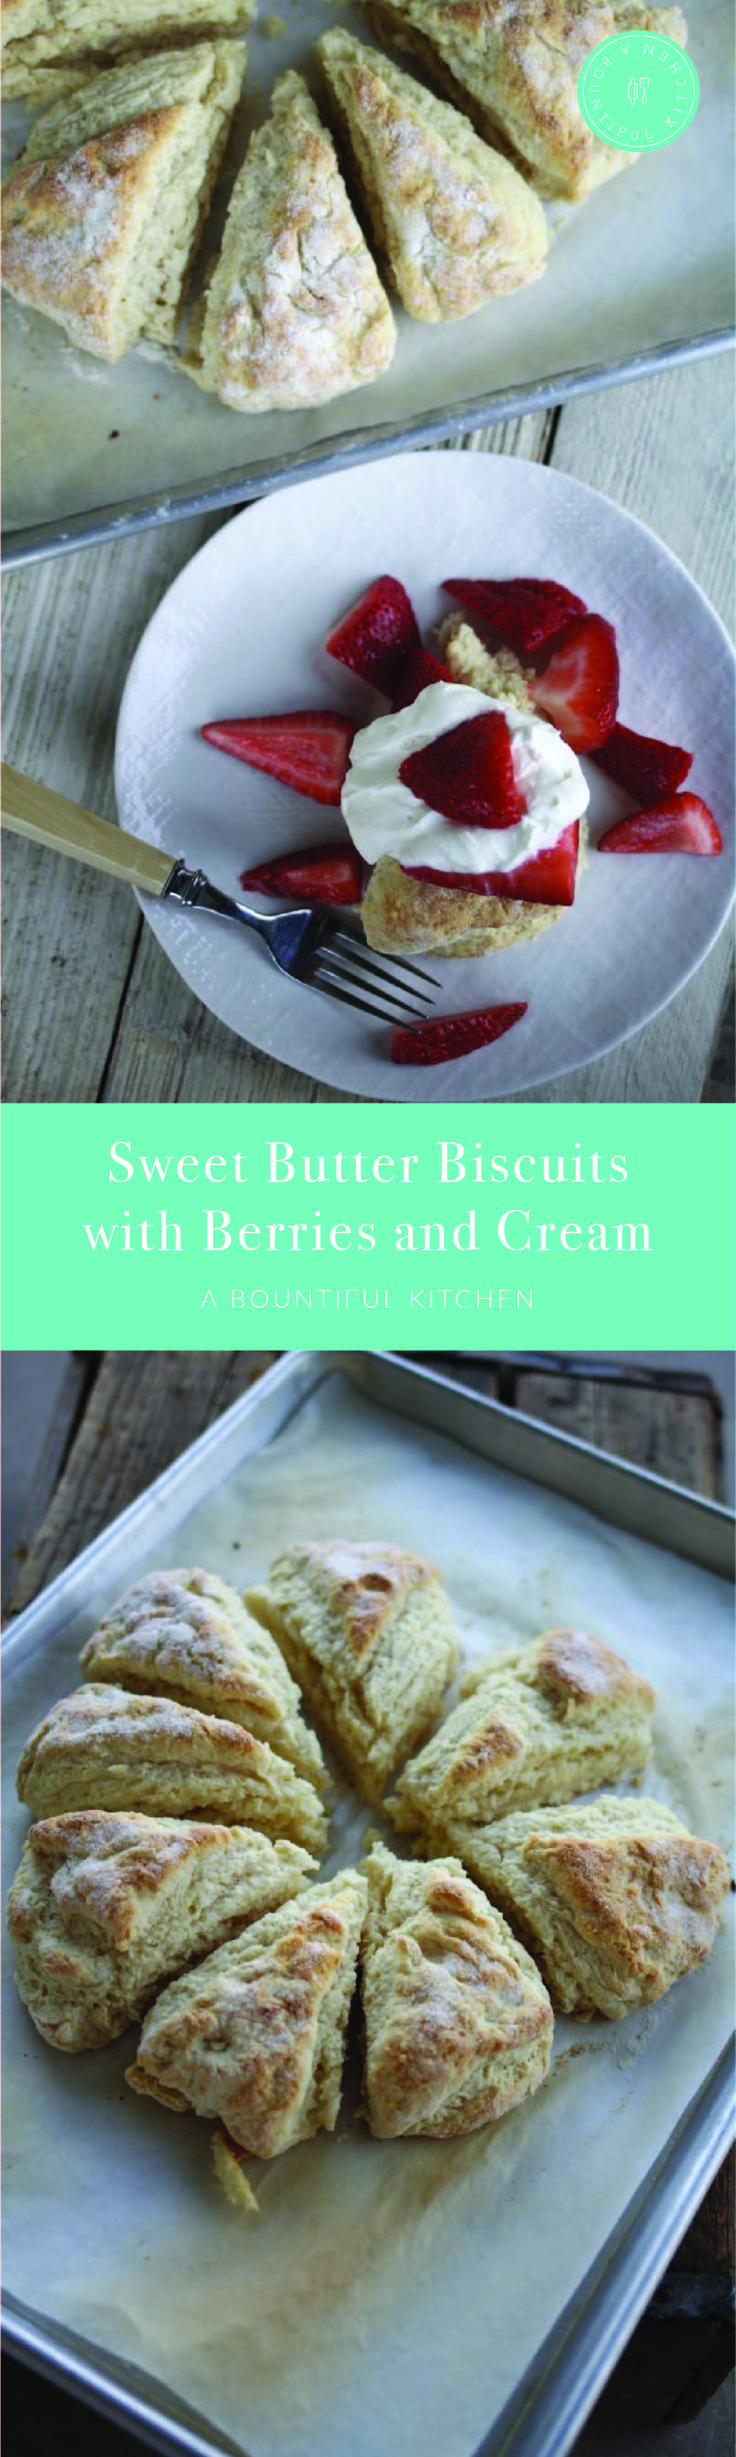 A Bountiful Kitchen: Sweet Butter Biscuits with Berries and Cream - I've taken my buttermilk biscuit recipe and changed out the shortening for butter, added sugar and cake flour to make the yummiest dessert biscuit. The result is the lightest, sweetest biscuit that's perfect for topping with cream and berries. #easy #biscuits #breakfast #dessert #holidaybaking